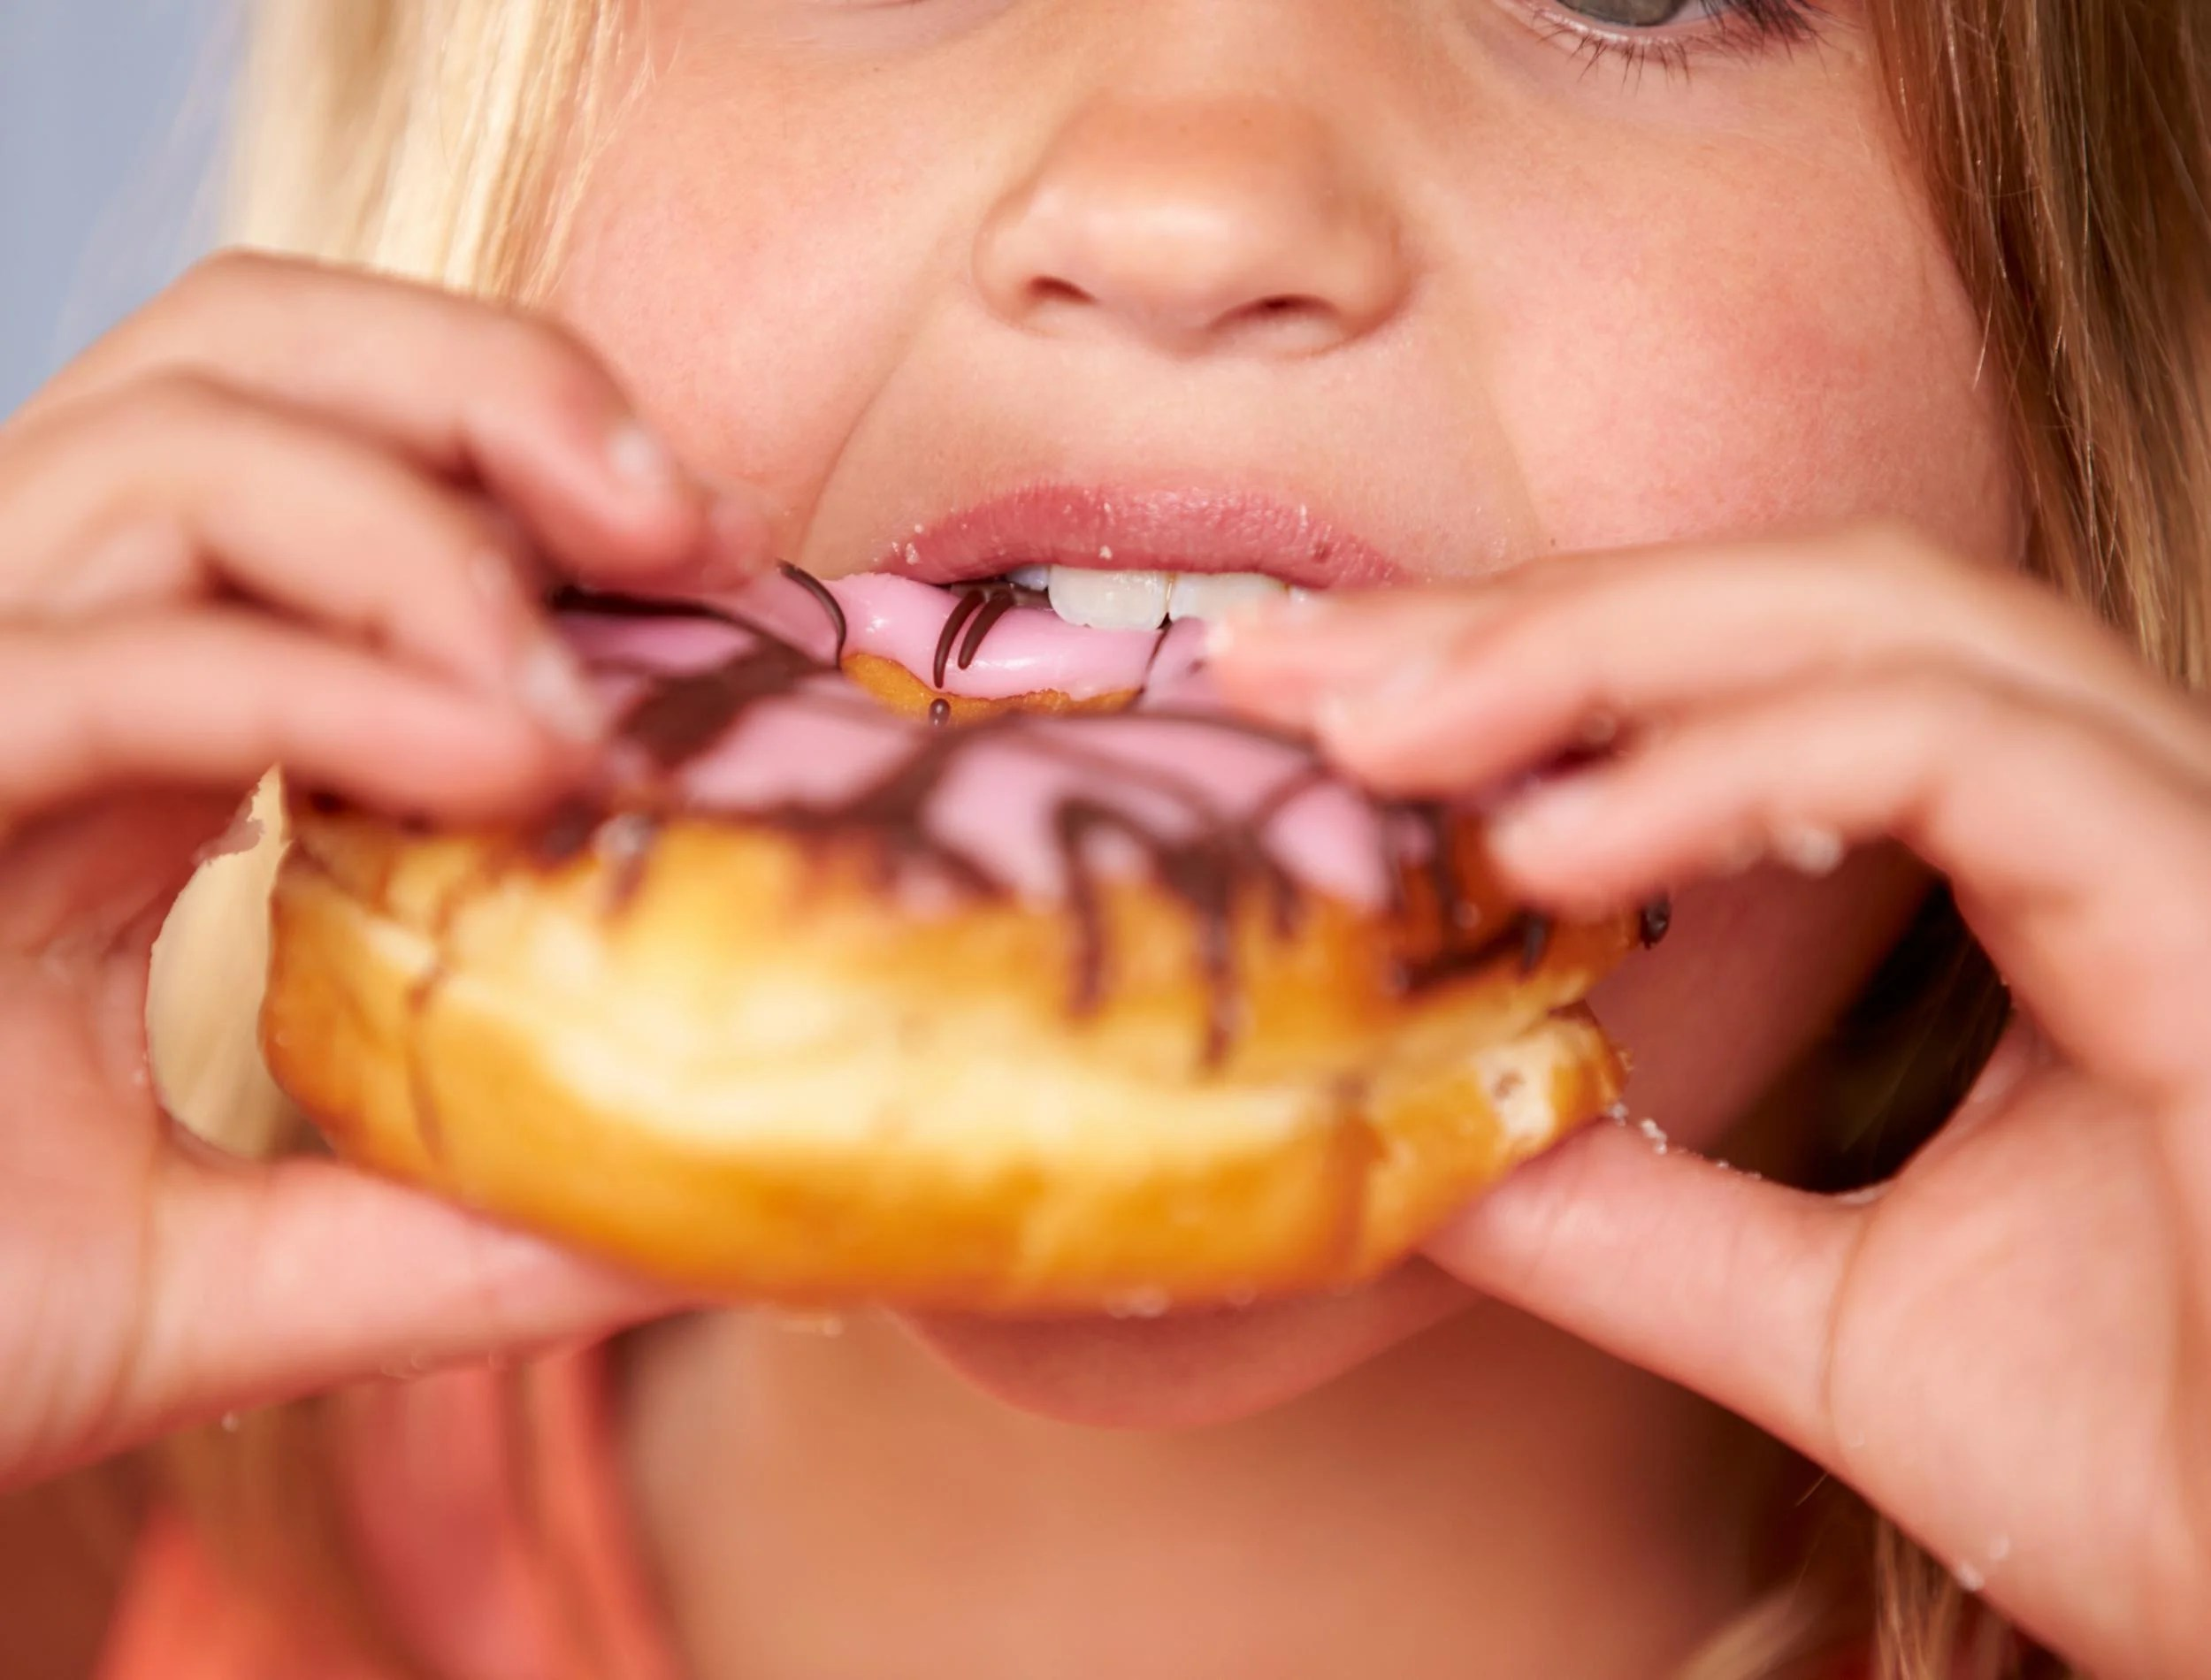 Ban On Junk Food Advertising Aimed At Children Extended To